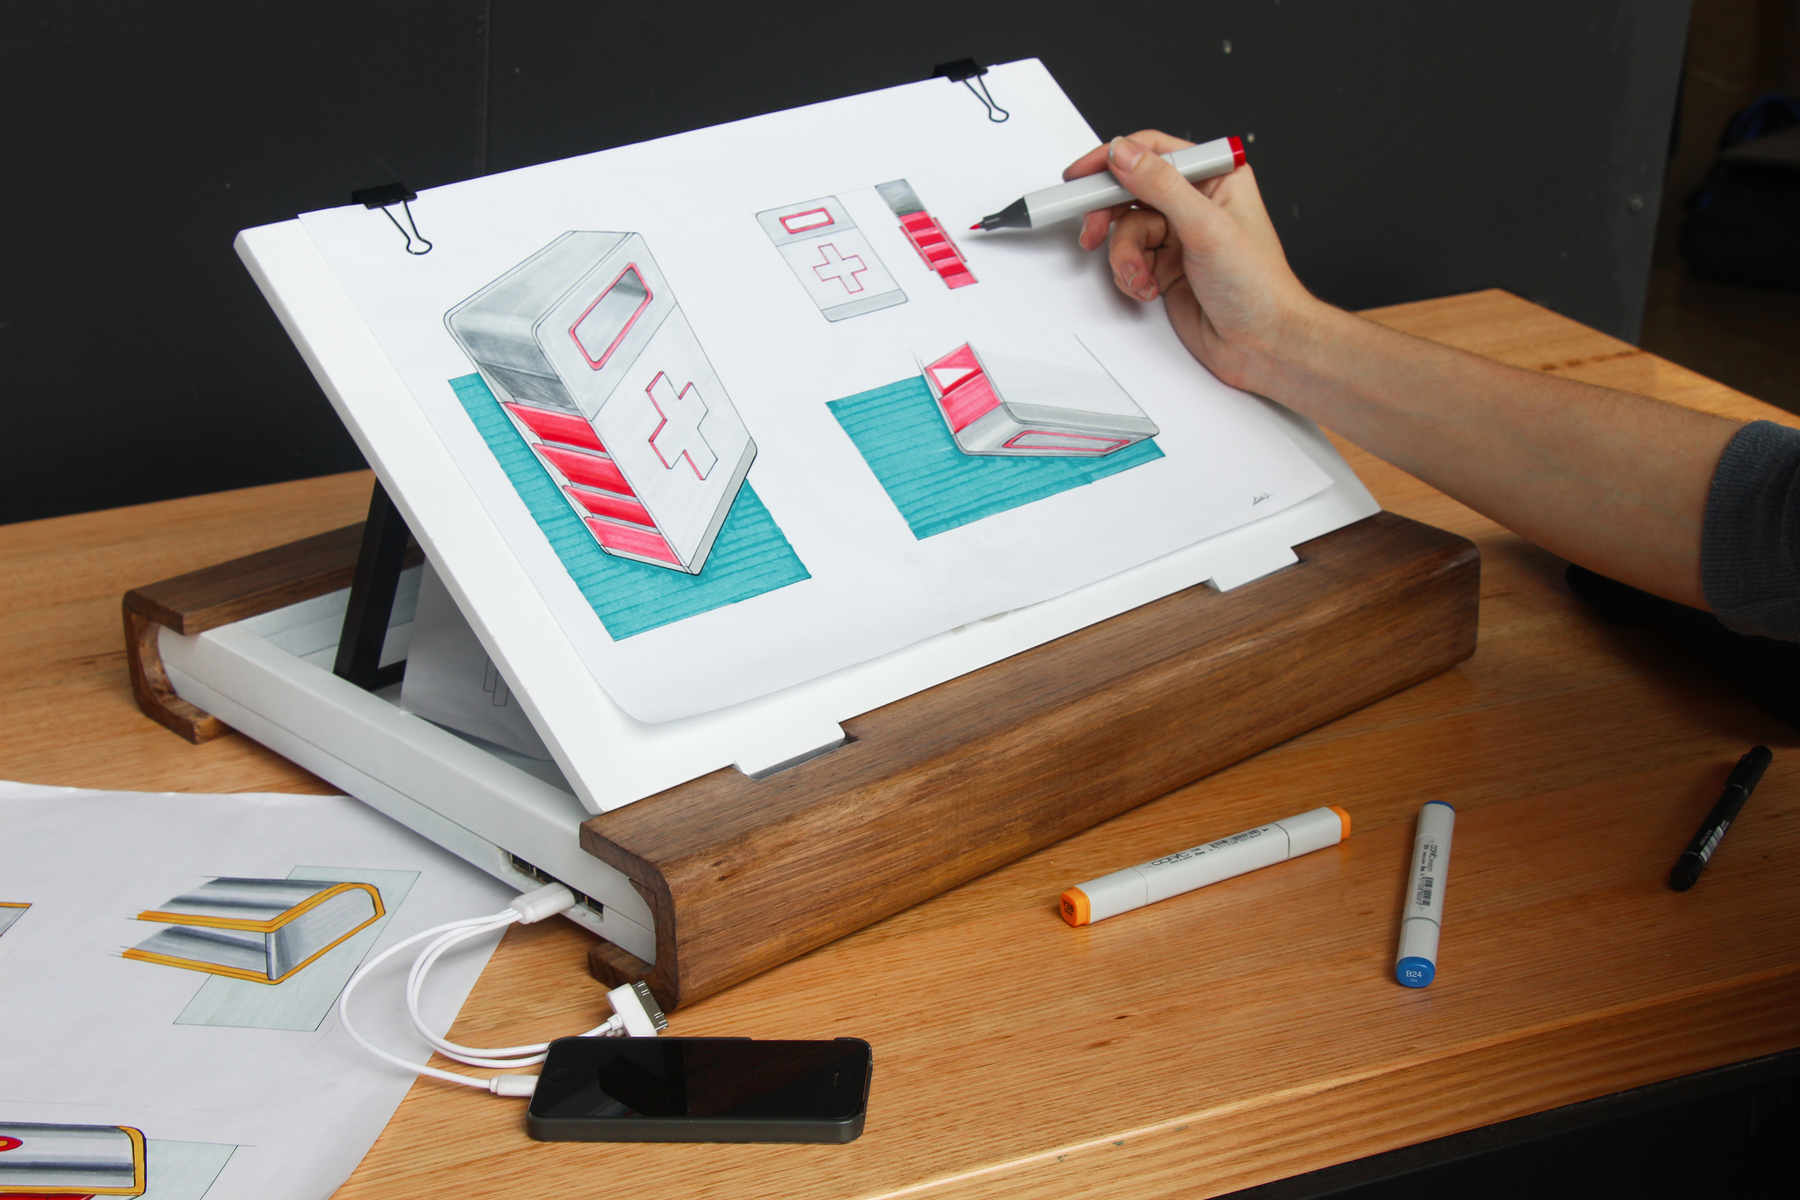 The drawing board provides an angled surface to draw on, while allowing the charging of electronic devices via a integrated power bank. Sketches and other materials can also be stored in the compartment underneath the board.